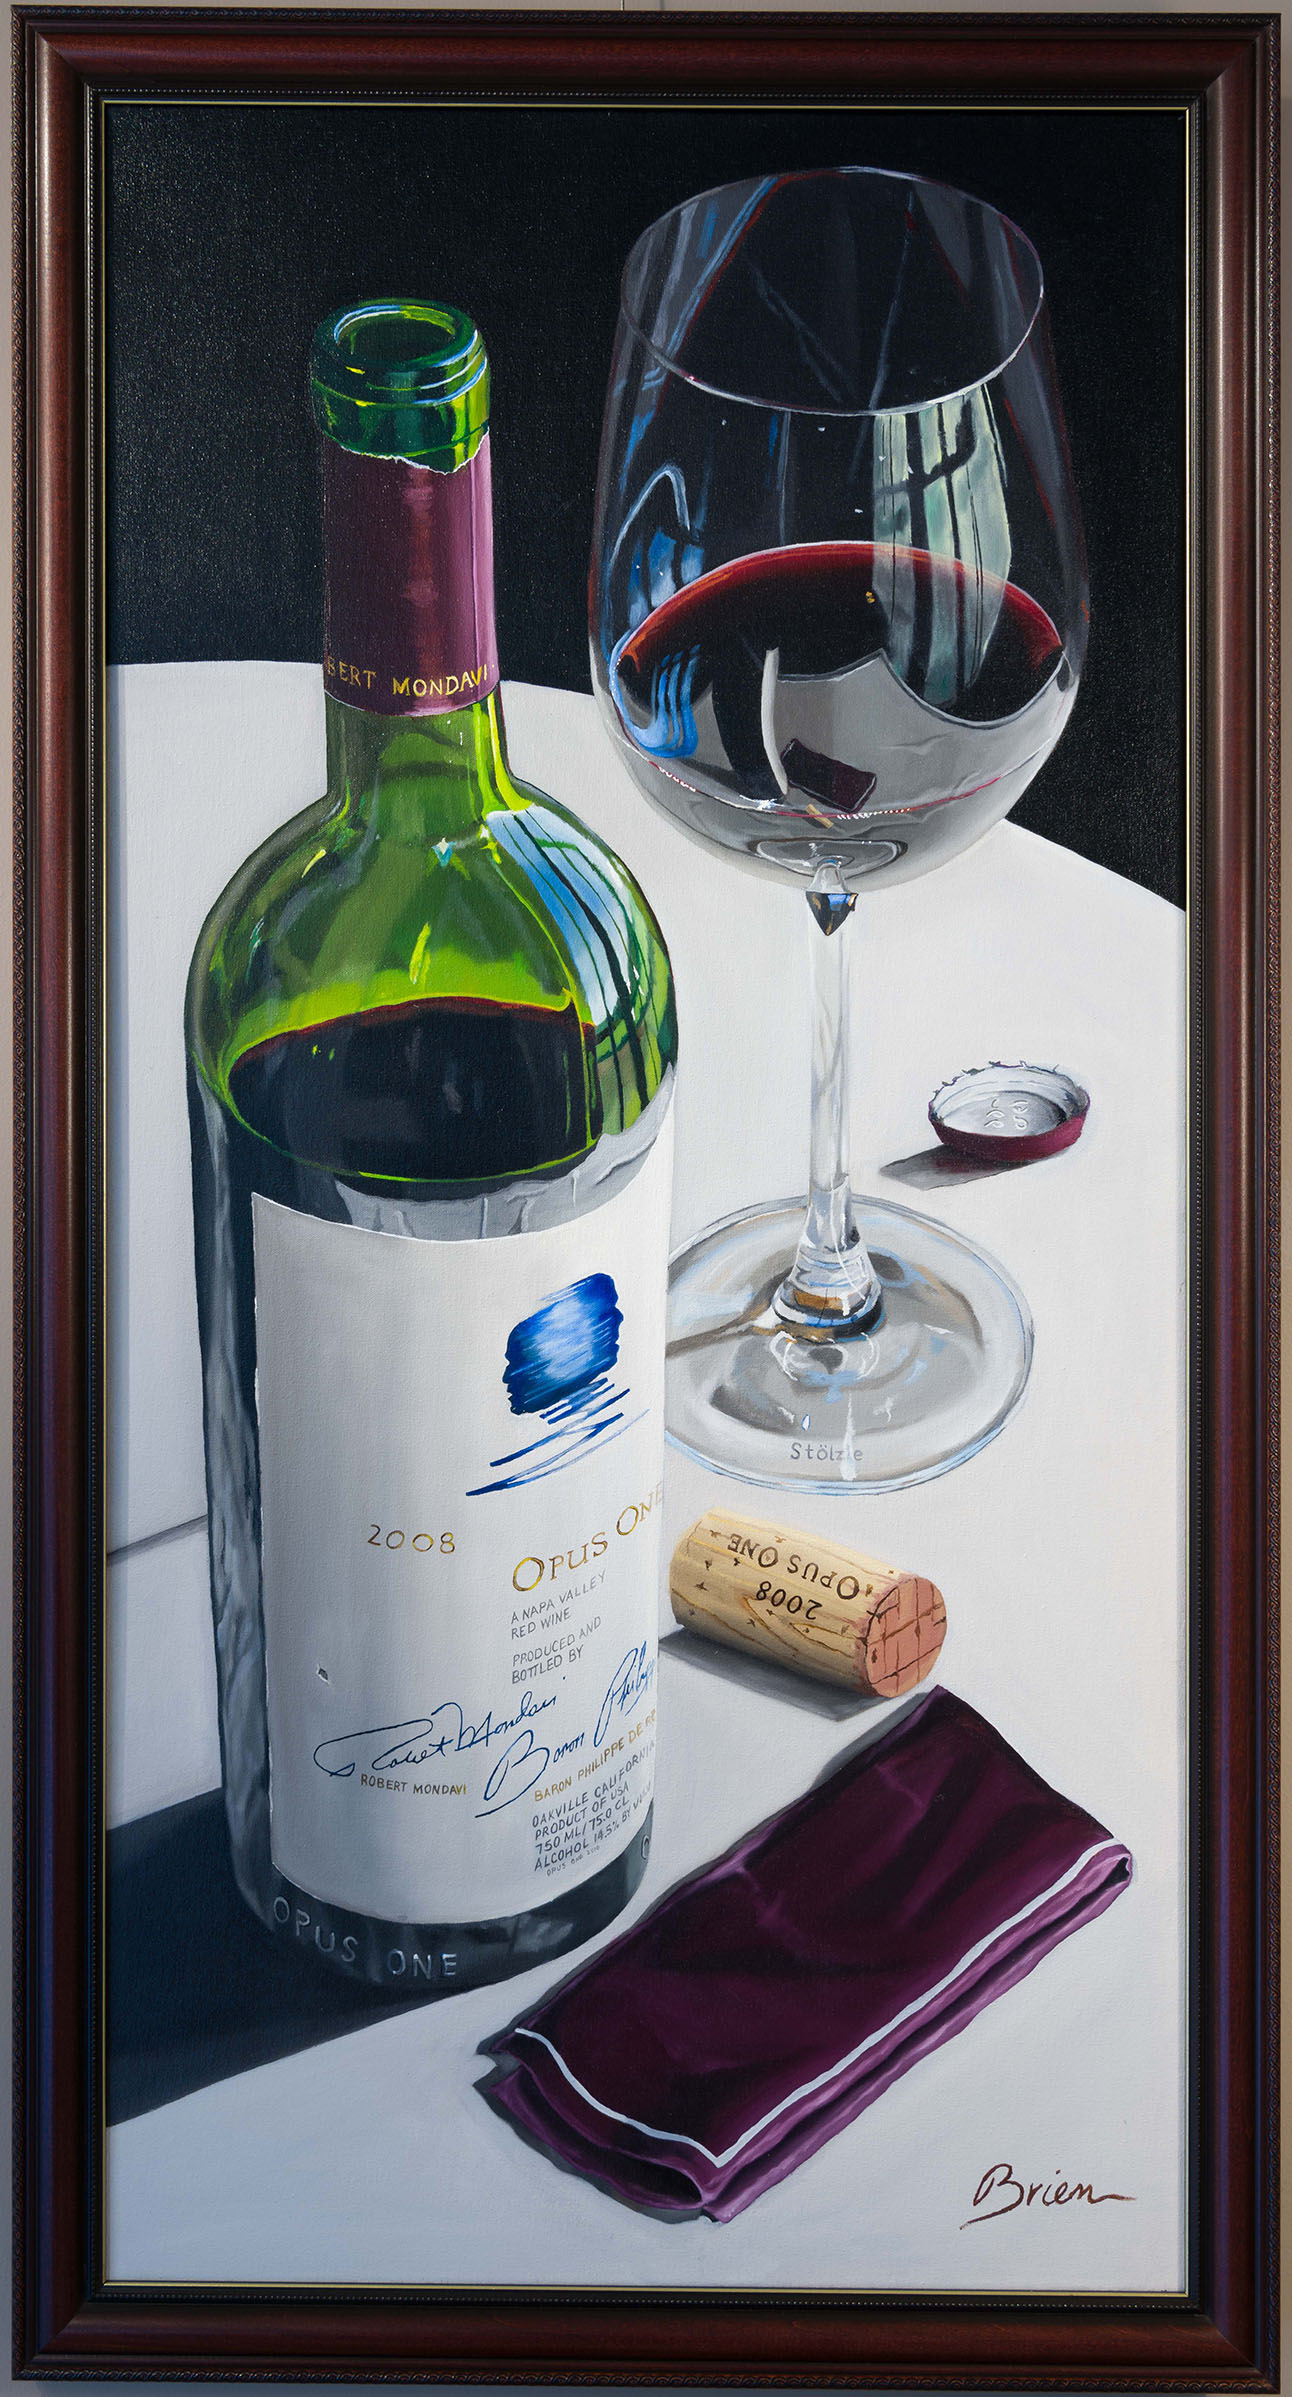 Still life oil painting of opus one wine on table with full glass.